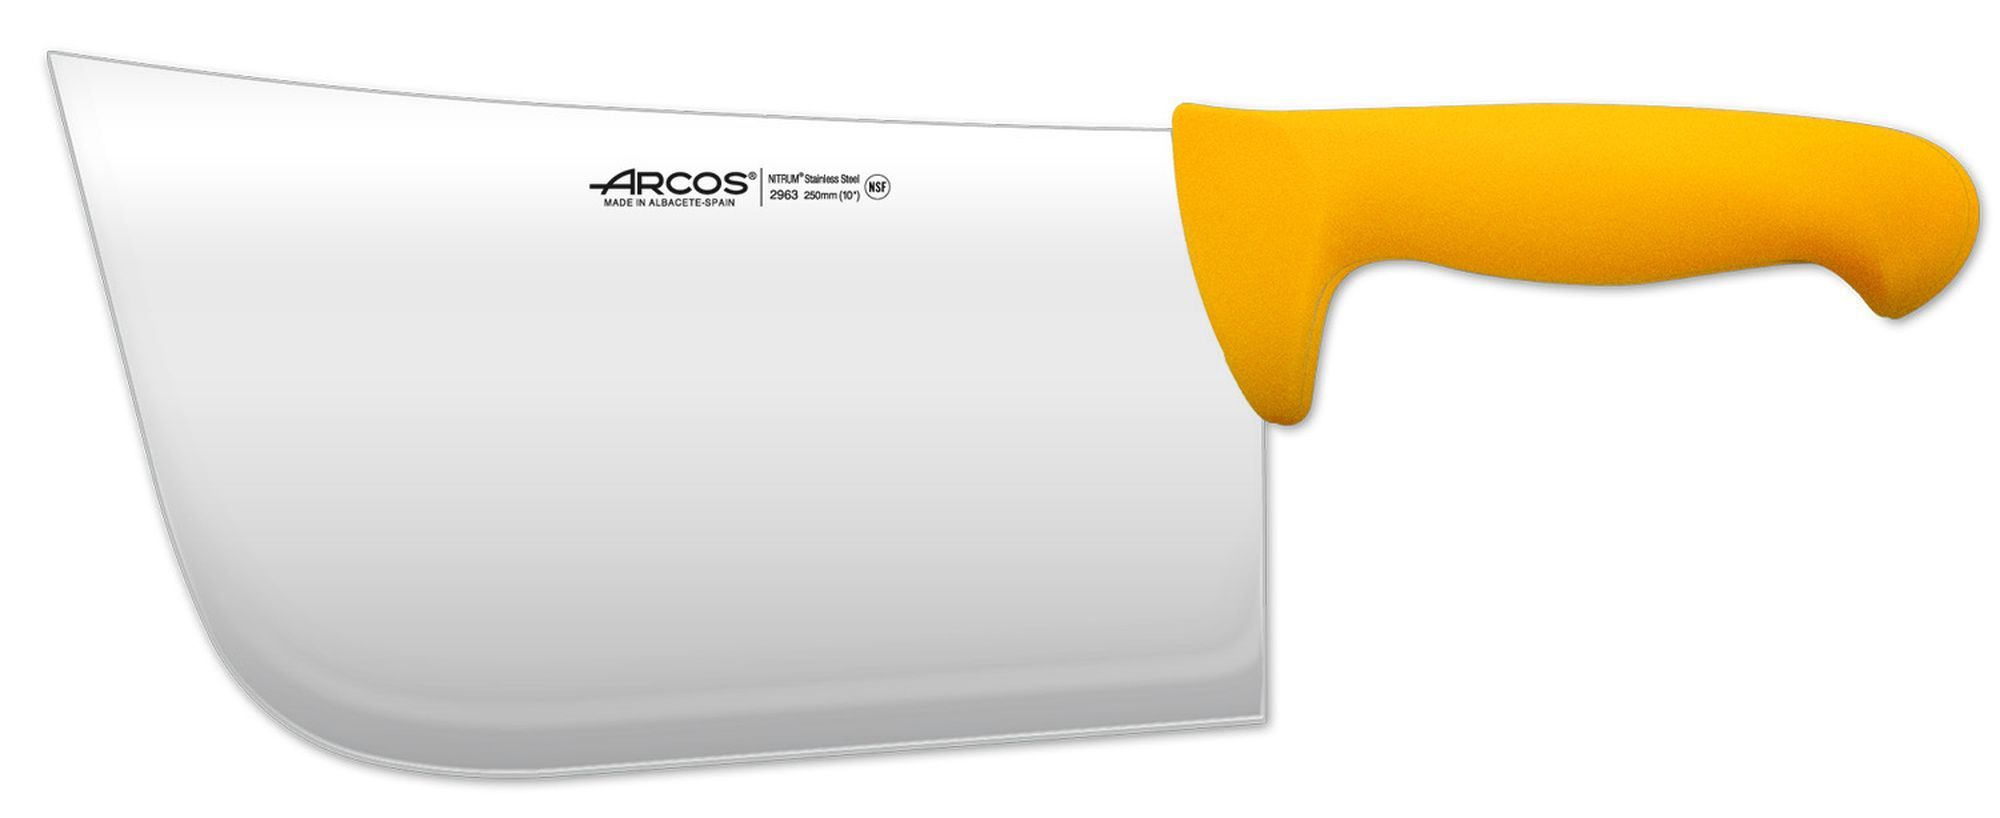 Cleaver Arcos ref.: 296300